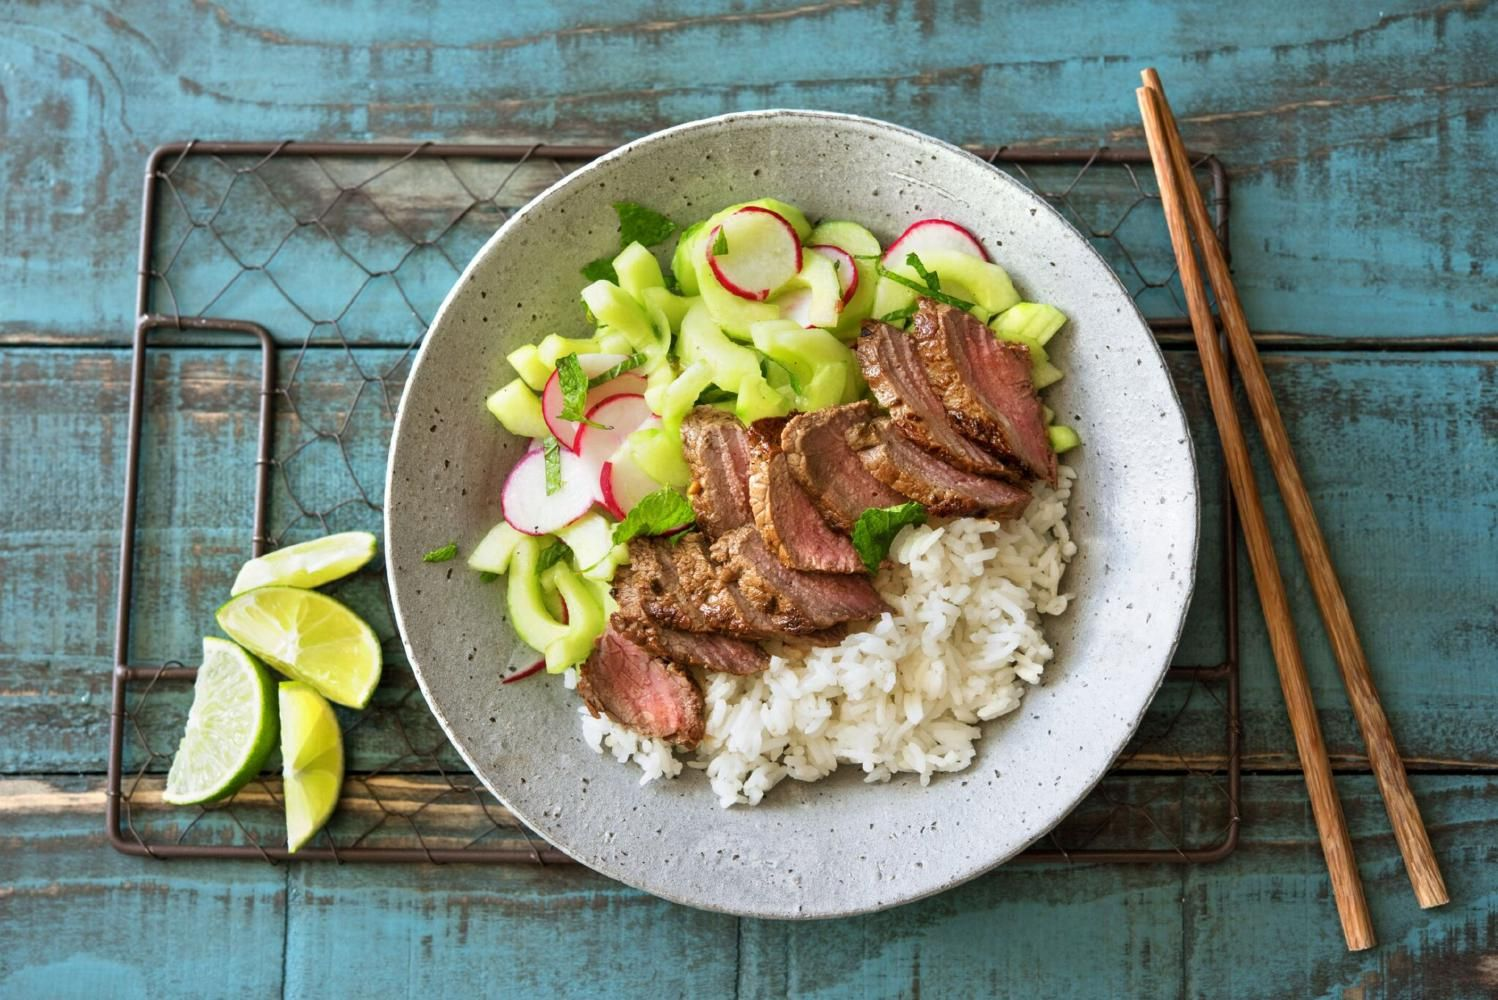 Blue apron quick pickles - Vietnamese Marinated Steak With Herb Salad Quick Pickled Veggies And Jasmine Rice Recipe